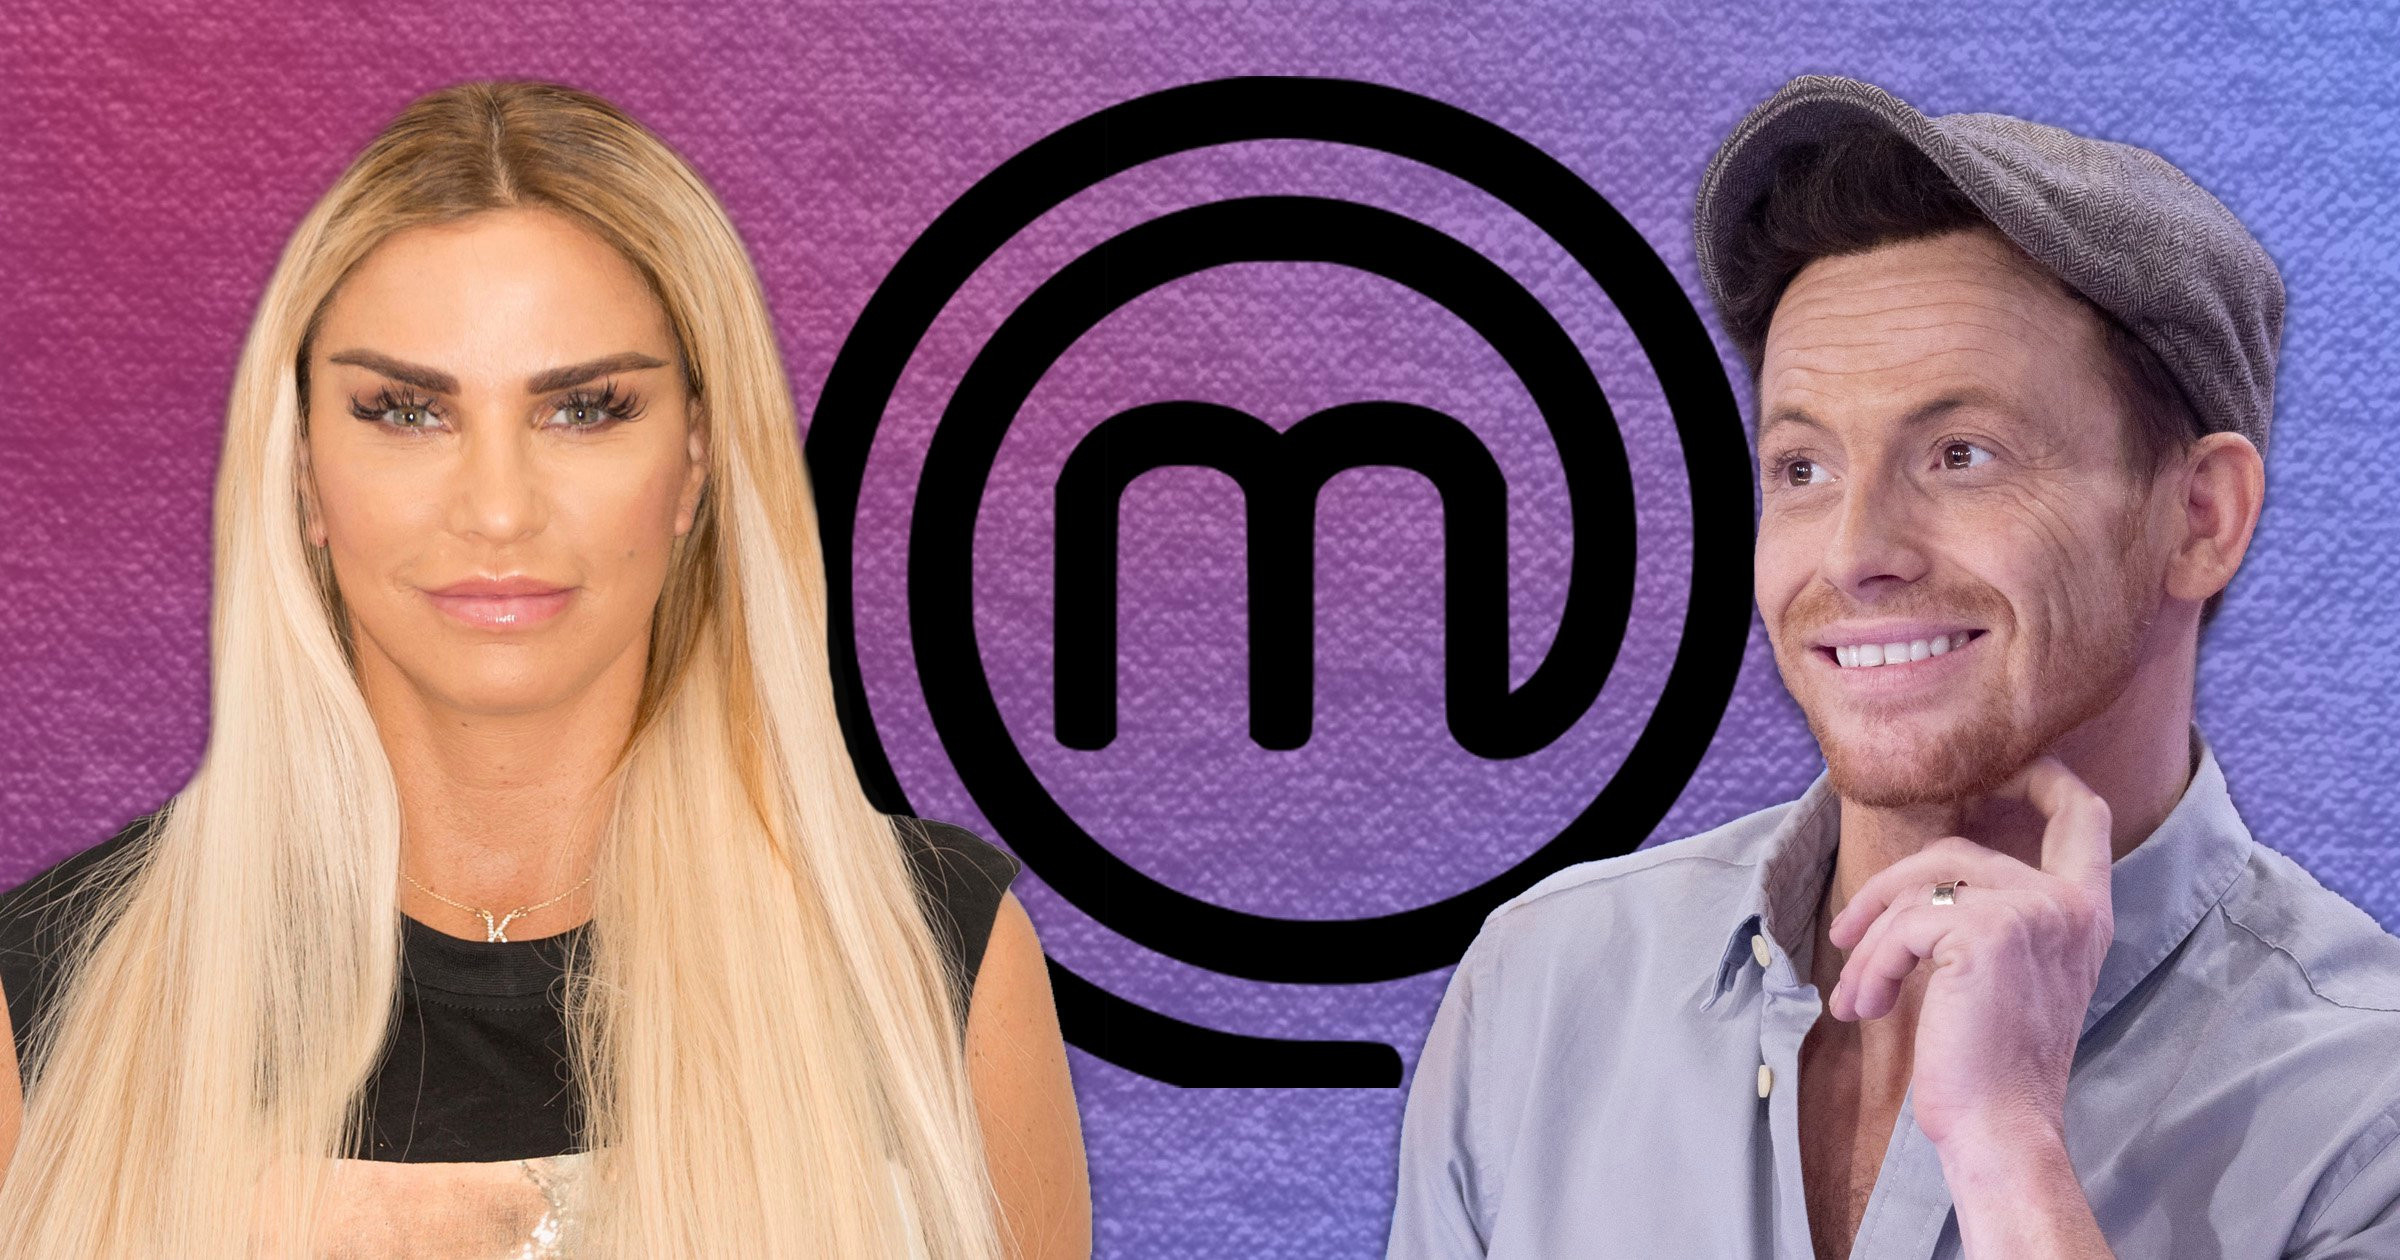 Joe Swash joins Katie Price as he 'signs' up for Celebrity Masterchef